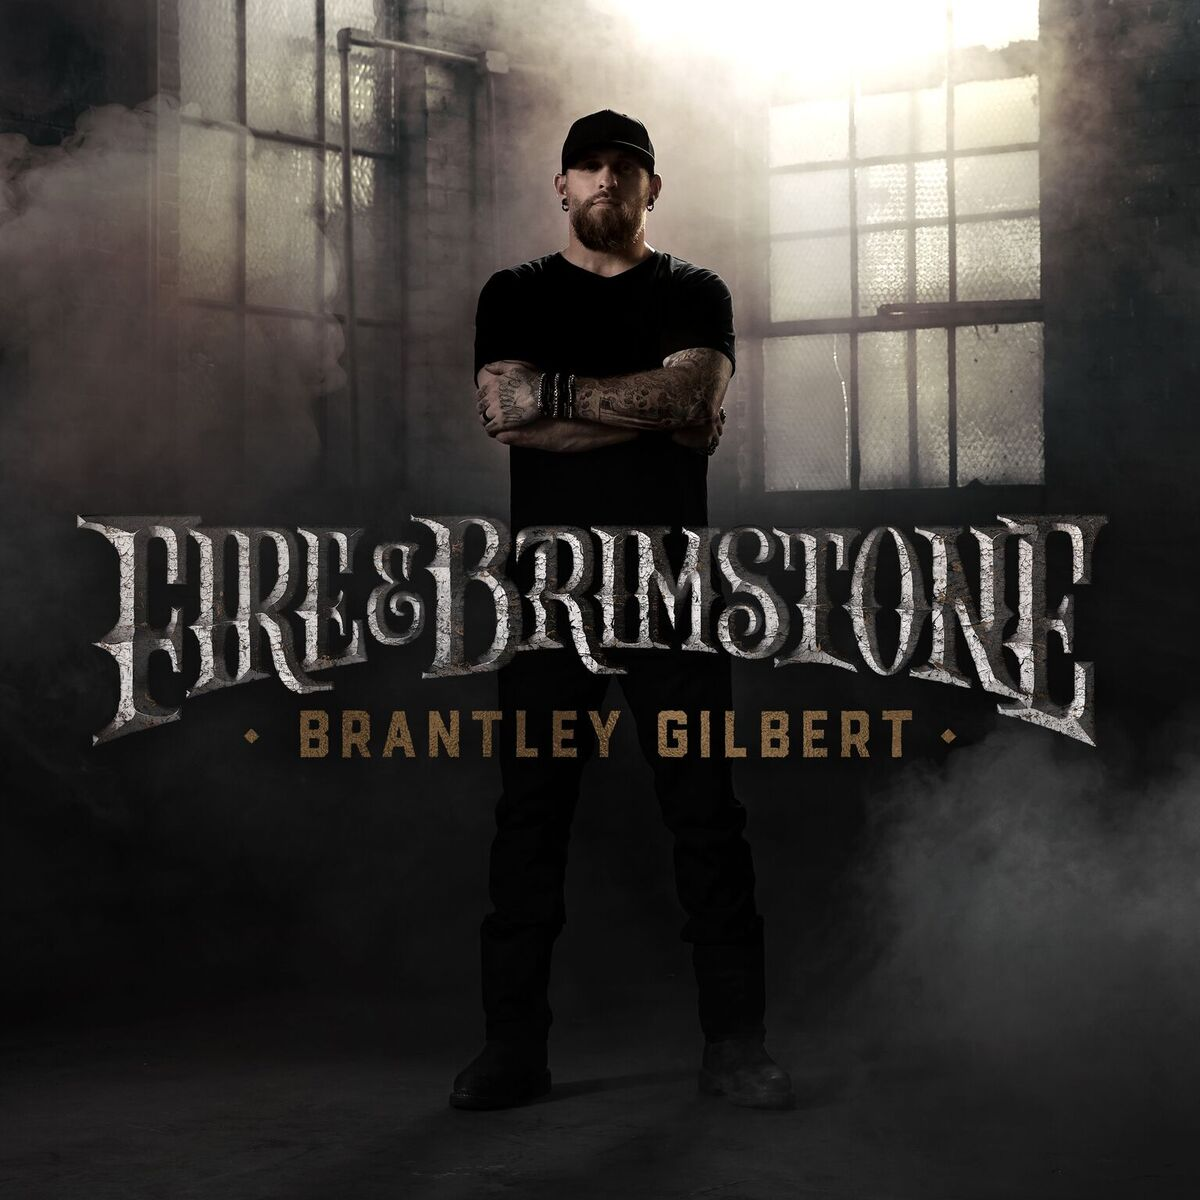 Brantley Gilbert unleashes Fire and Brimstone